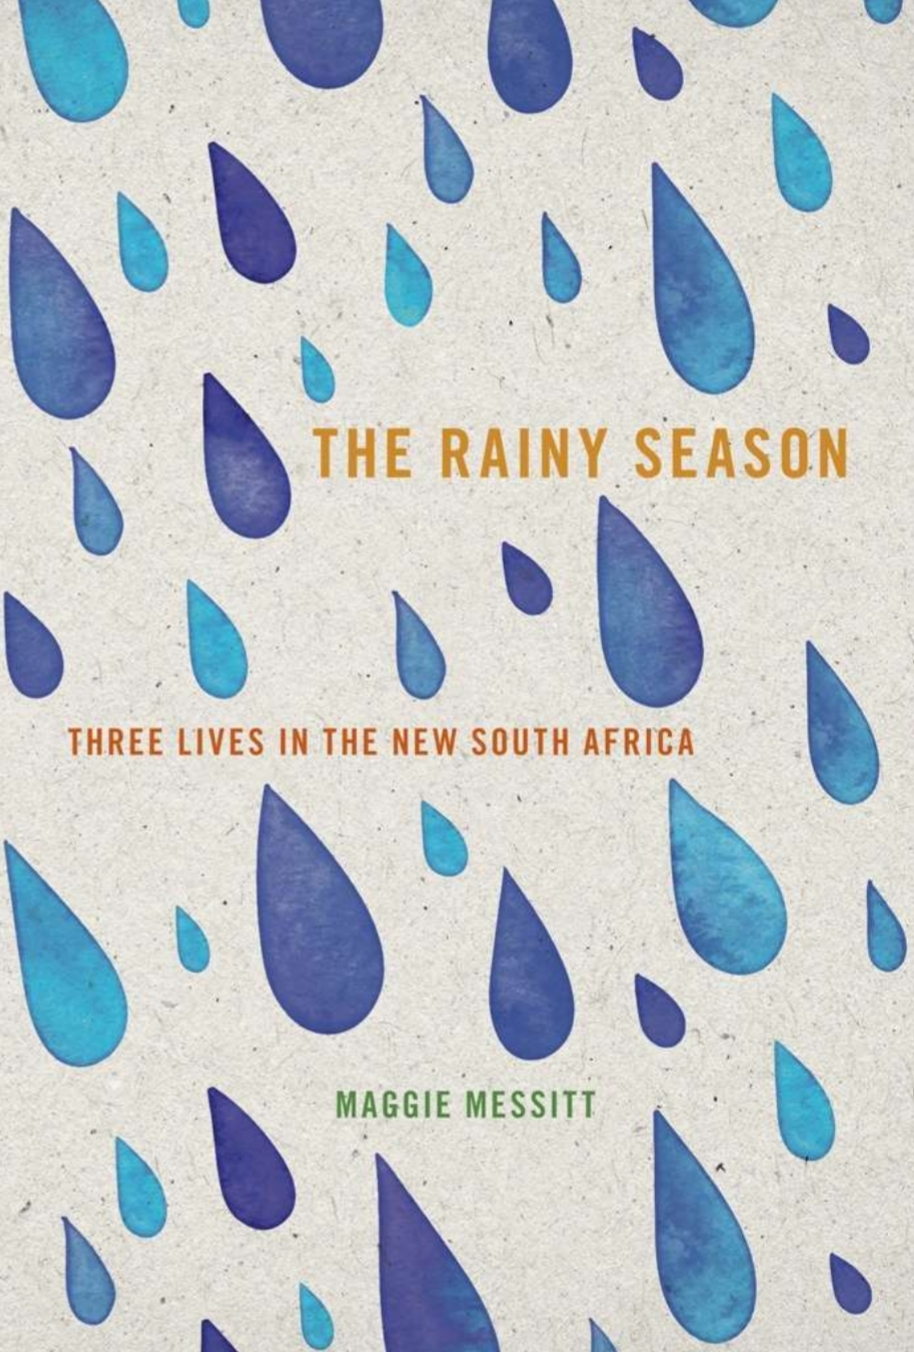 The Rainy Season